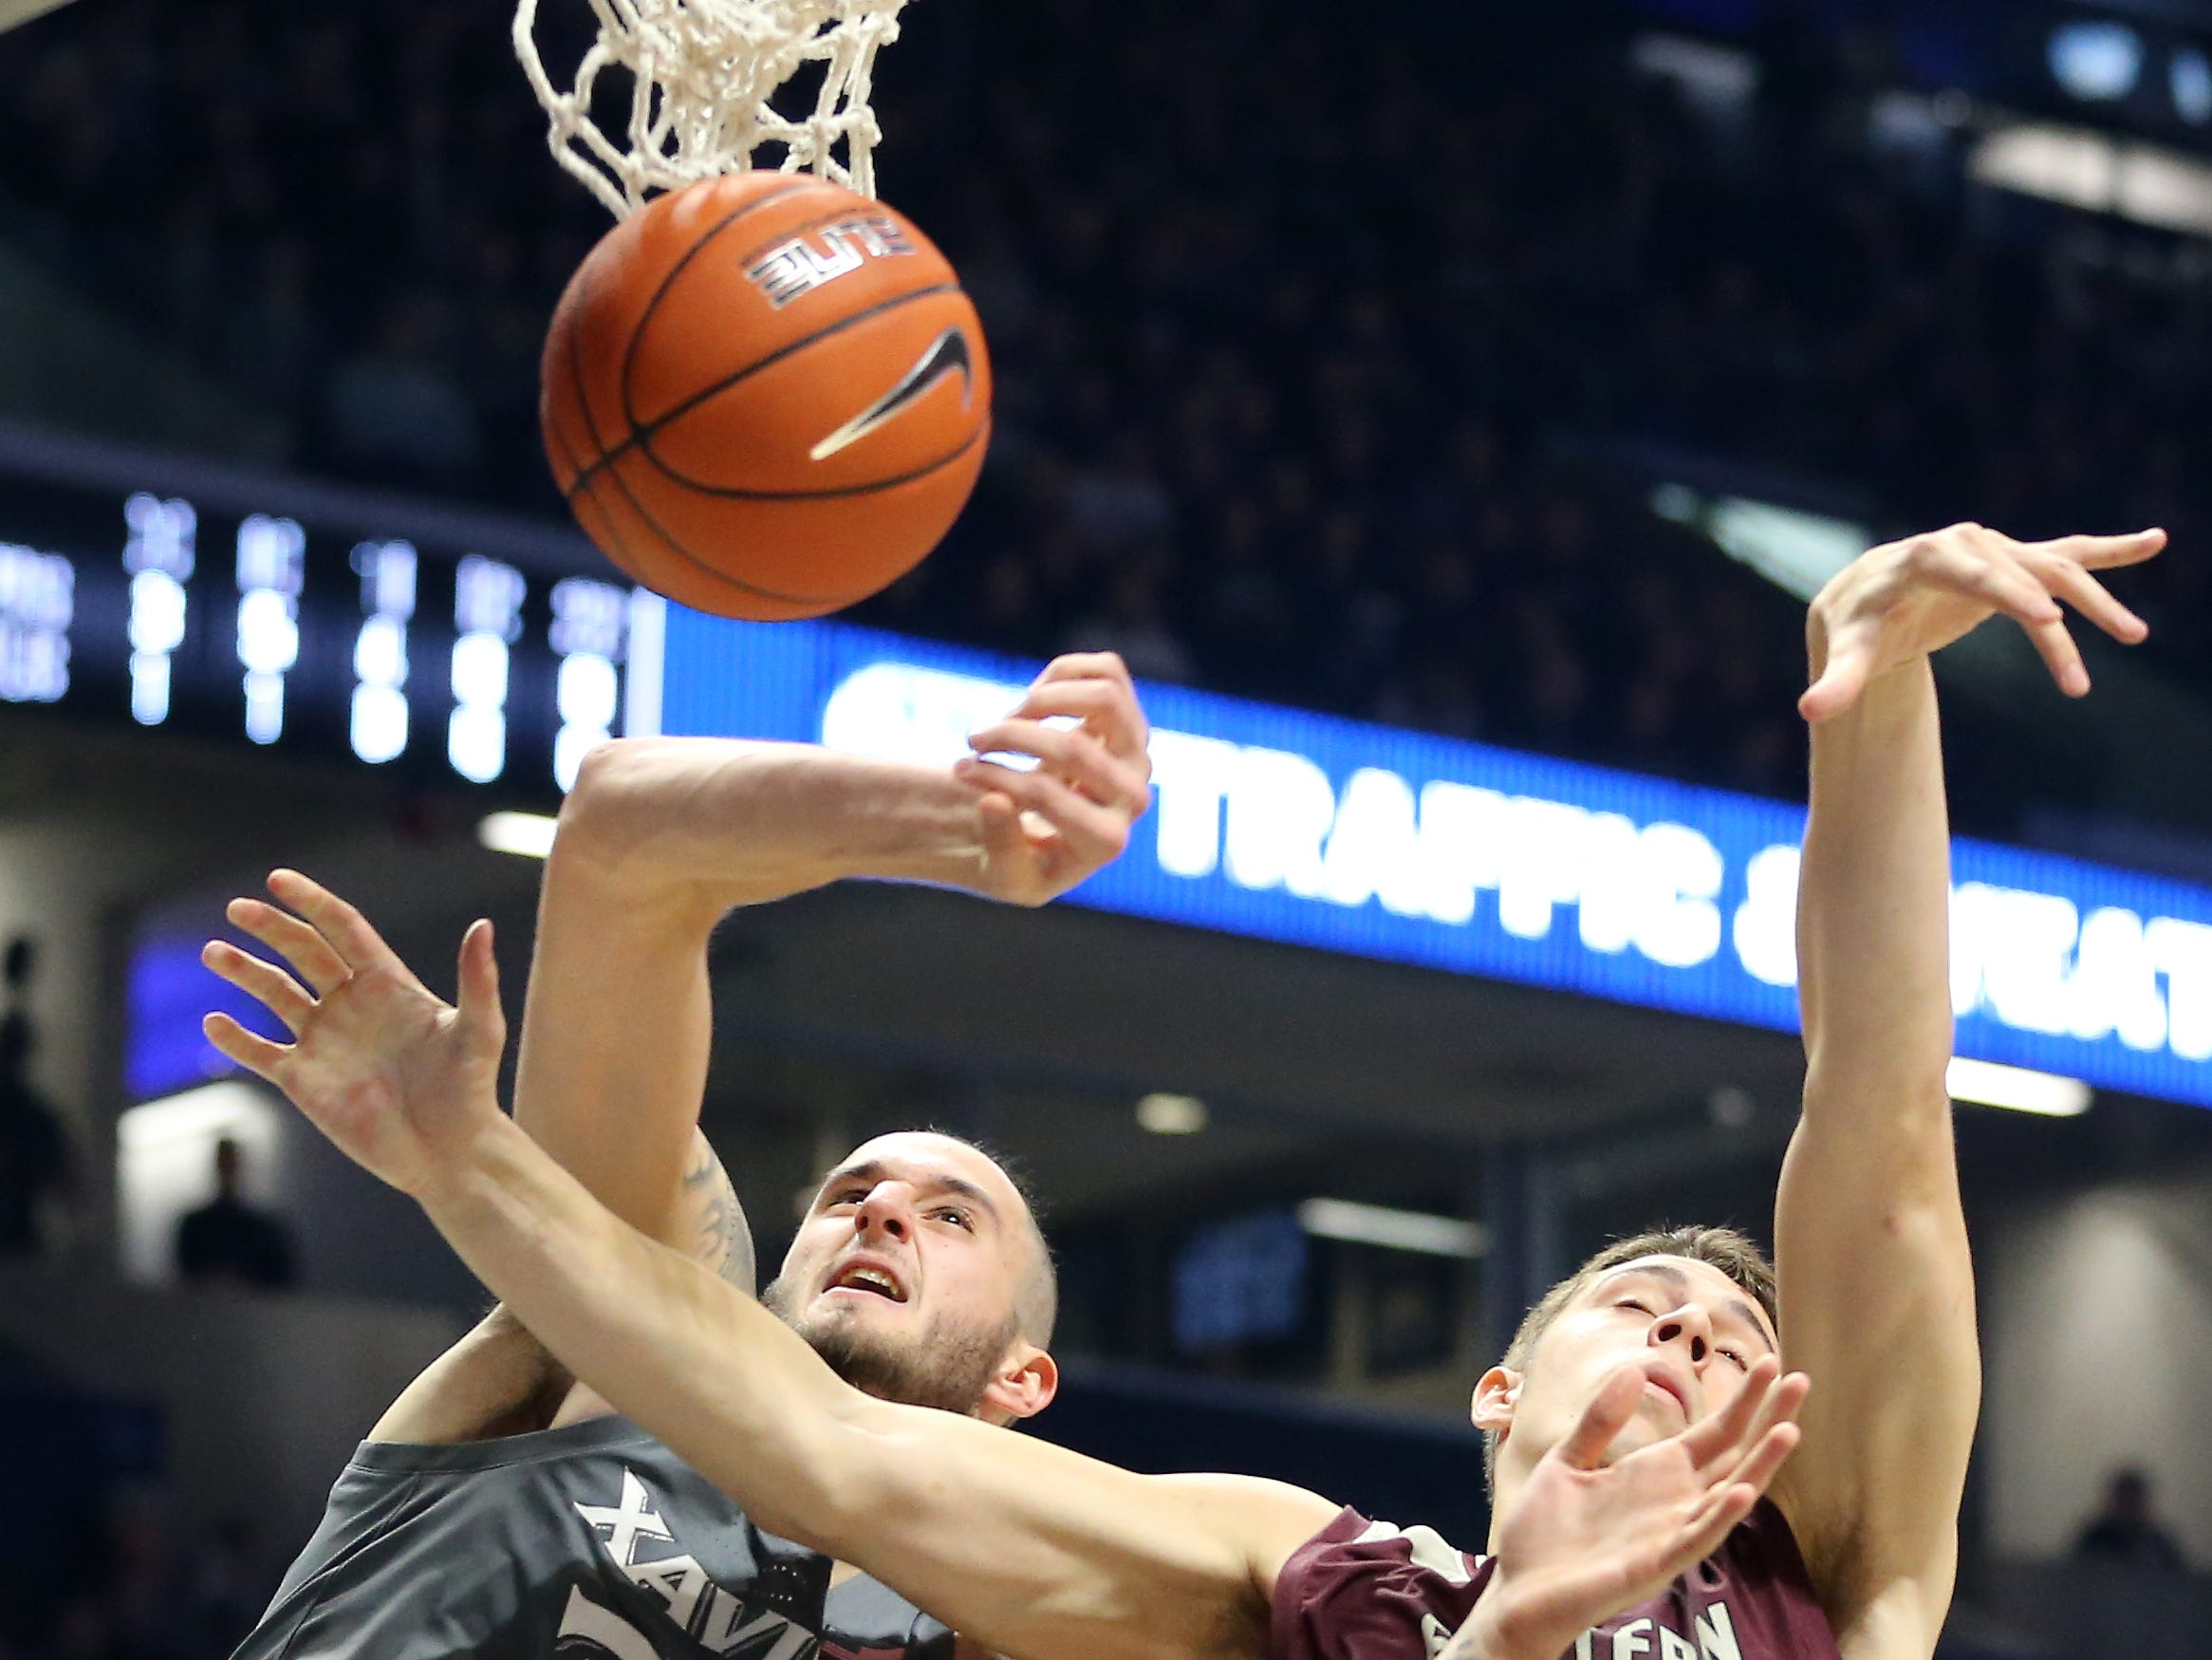 Xavier Musketeers forward Zach Hankins (35) and Eastern Kentucky Colonels forward Nick Mayo (10) battle for a rebound in the first half of an NCAA college basketball game, Saturday, Dec. 15, 2018, at Cintas Center in Cincinnati, Ohio